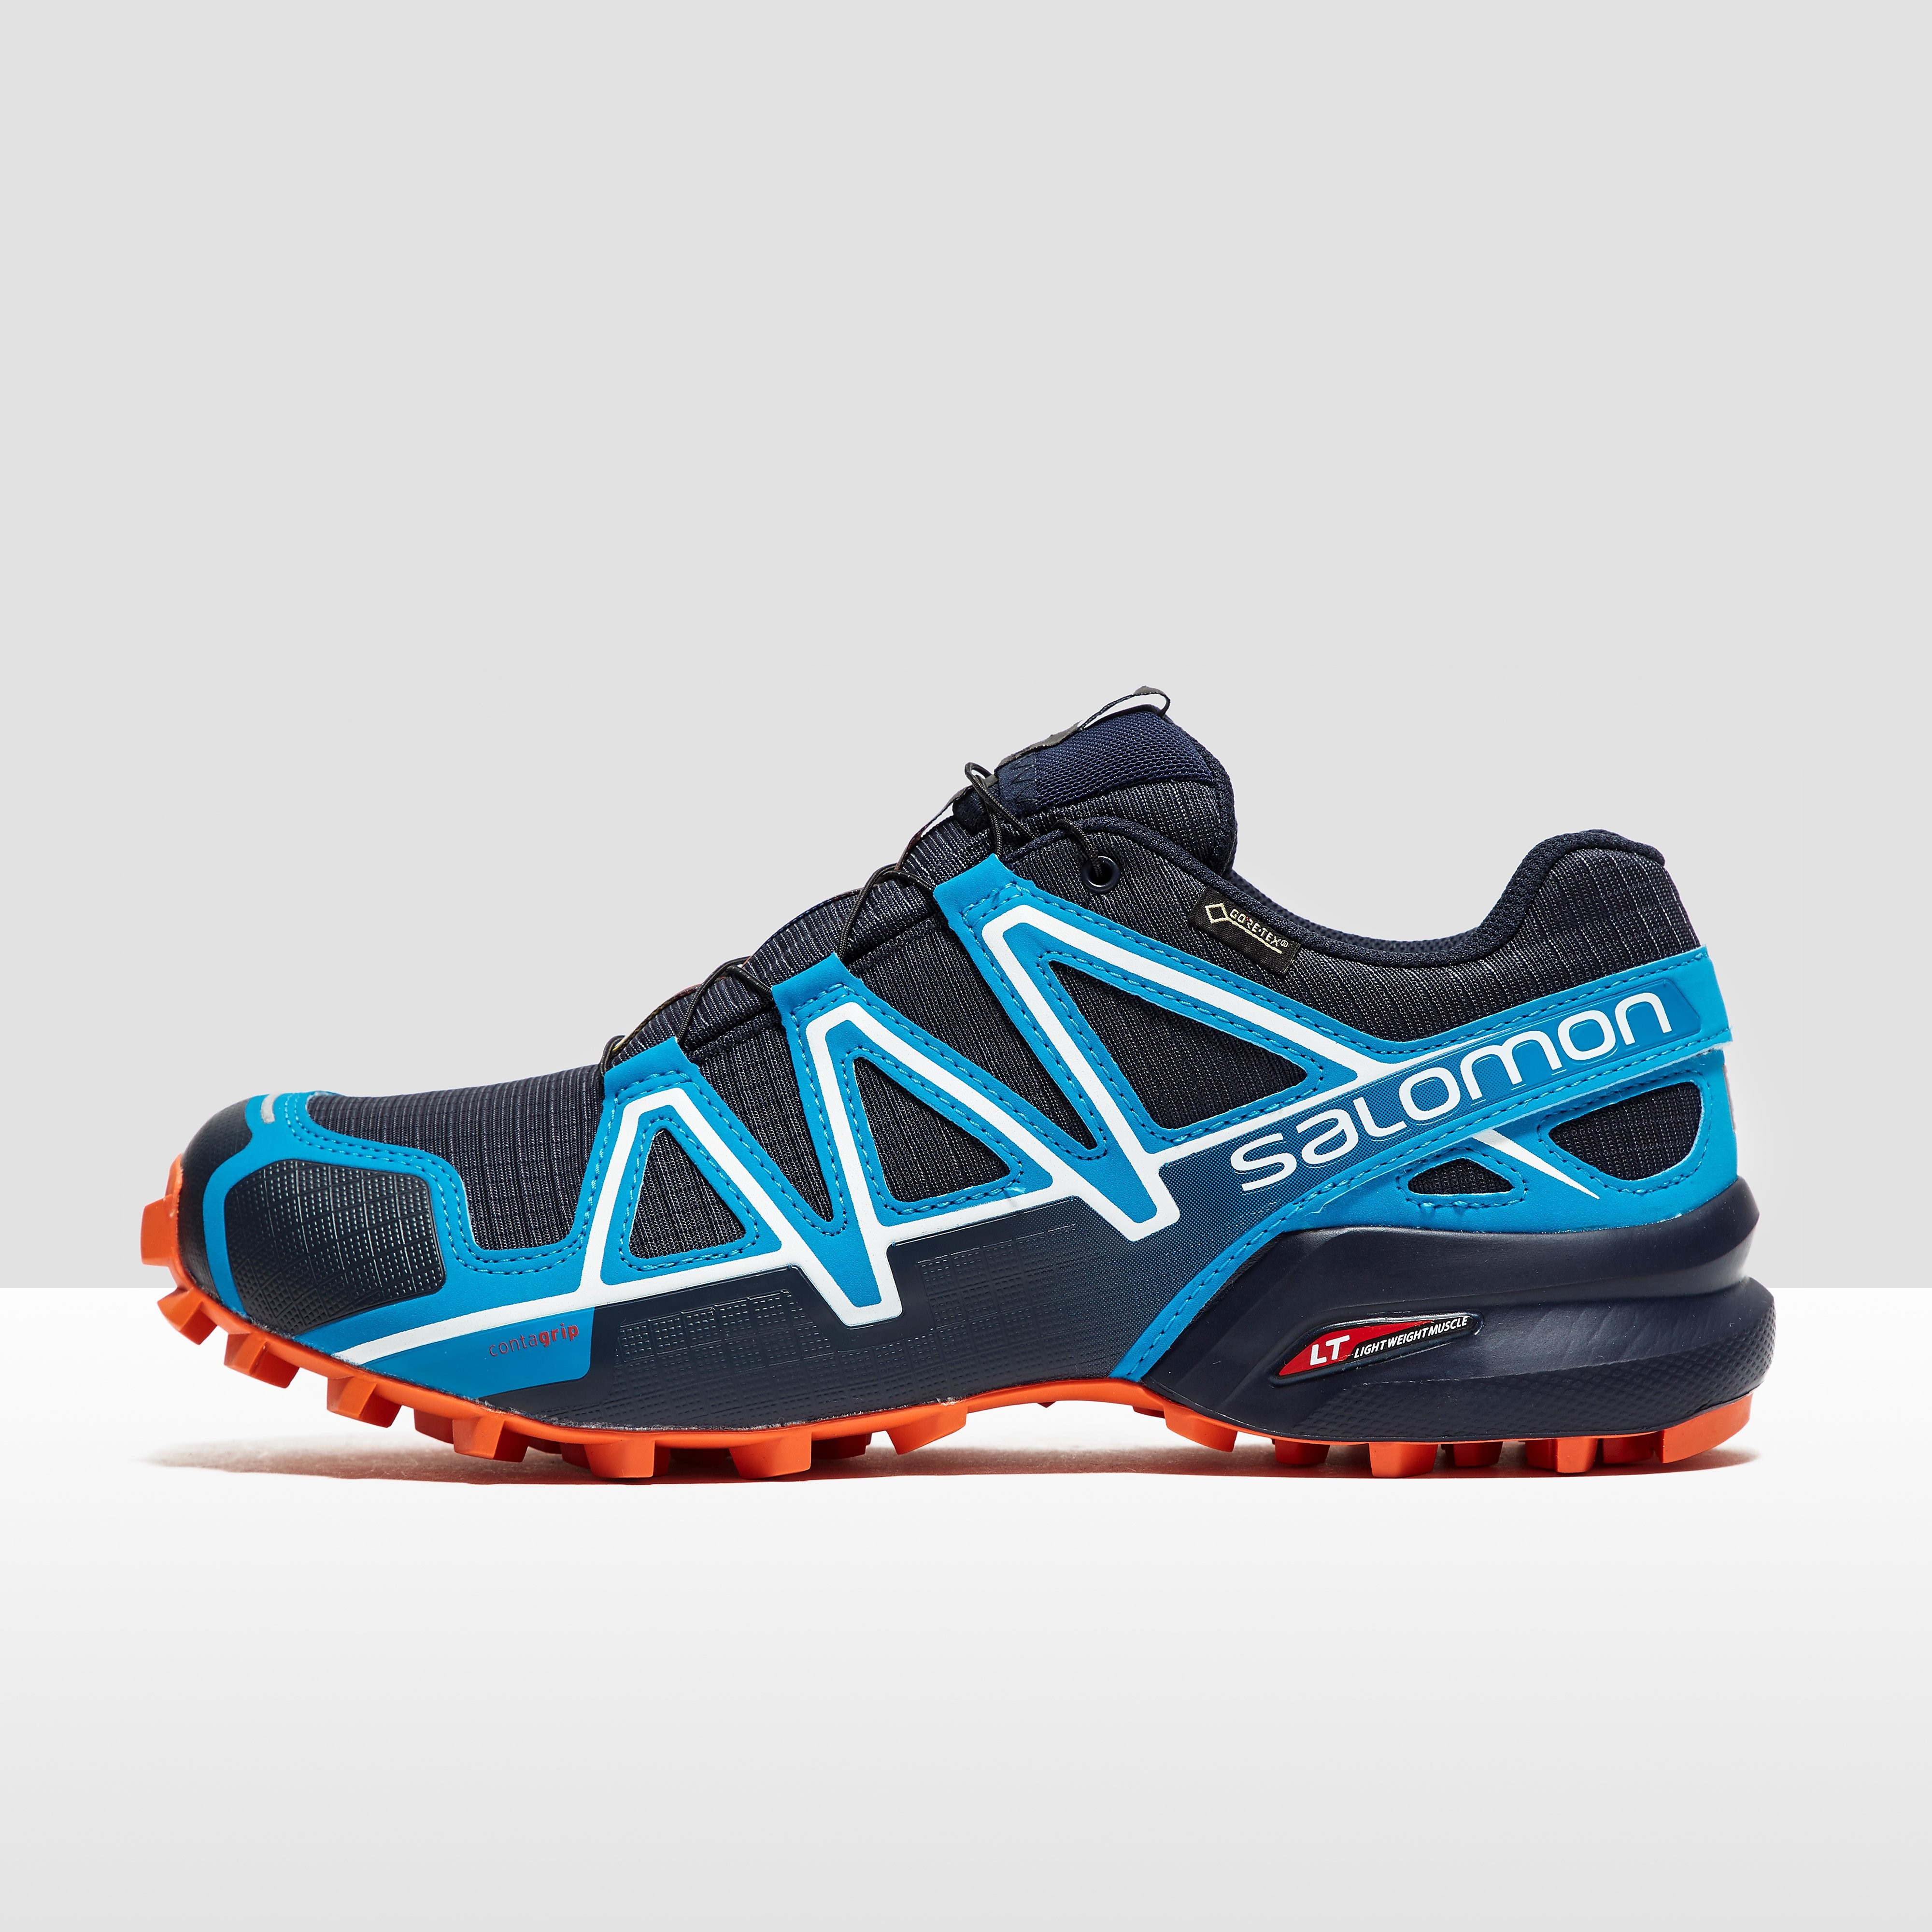 Salomon Speedcross 4 CS GTX Men's Trail Running Shoes